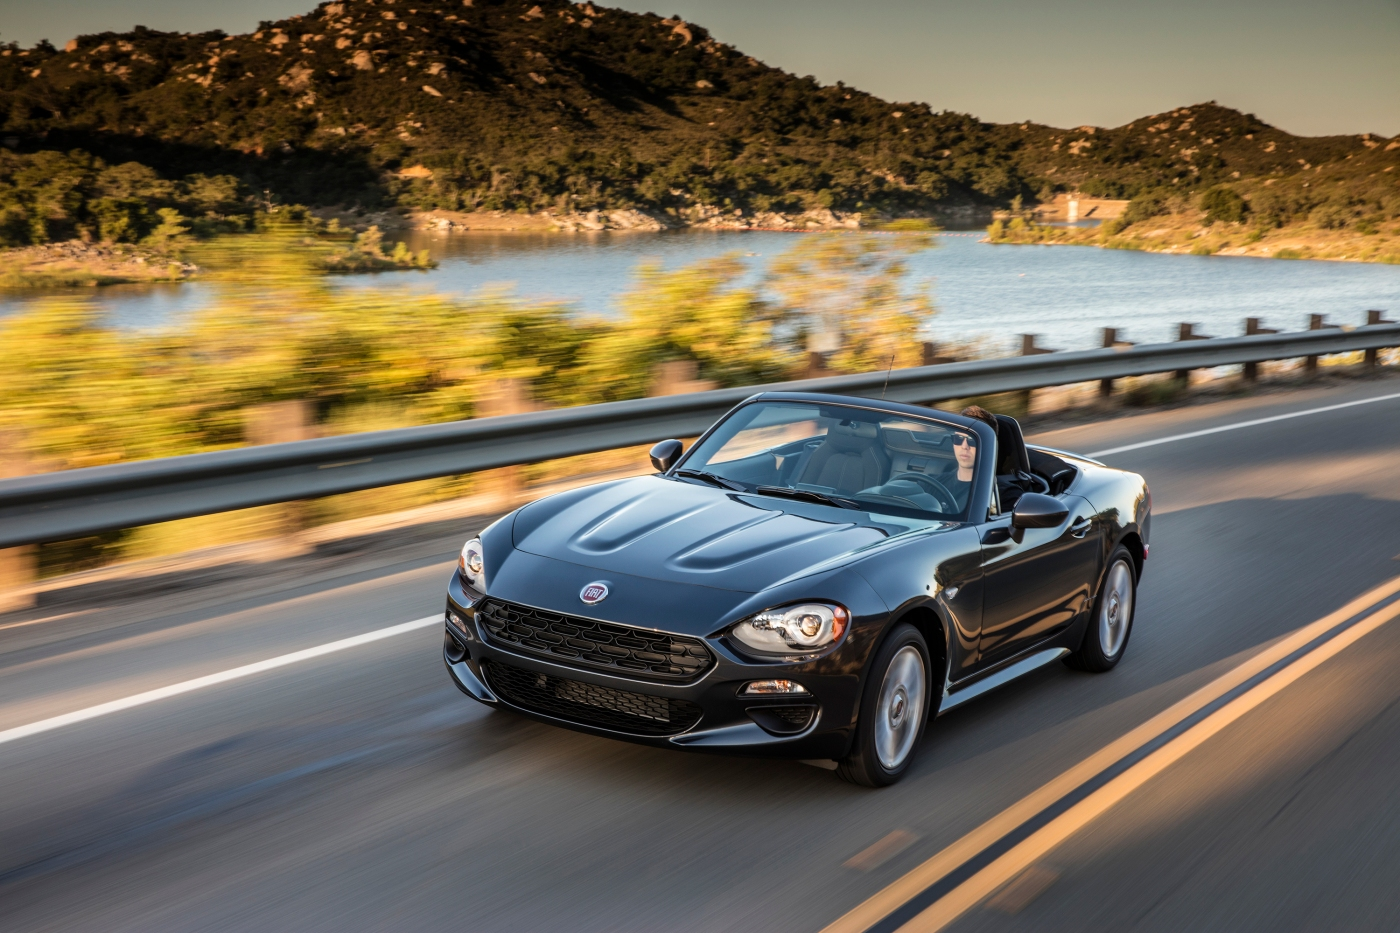 2017 fiat 124 spider classica a driveways review the. Black Bedroom Furniture Sets. Home Design Ideas